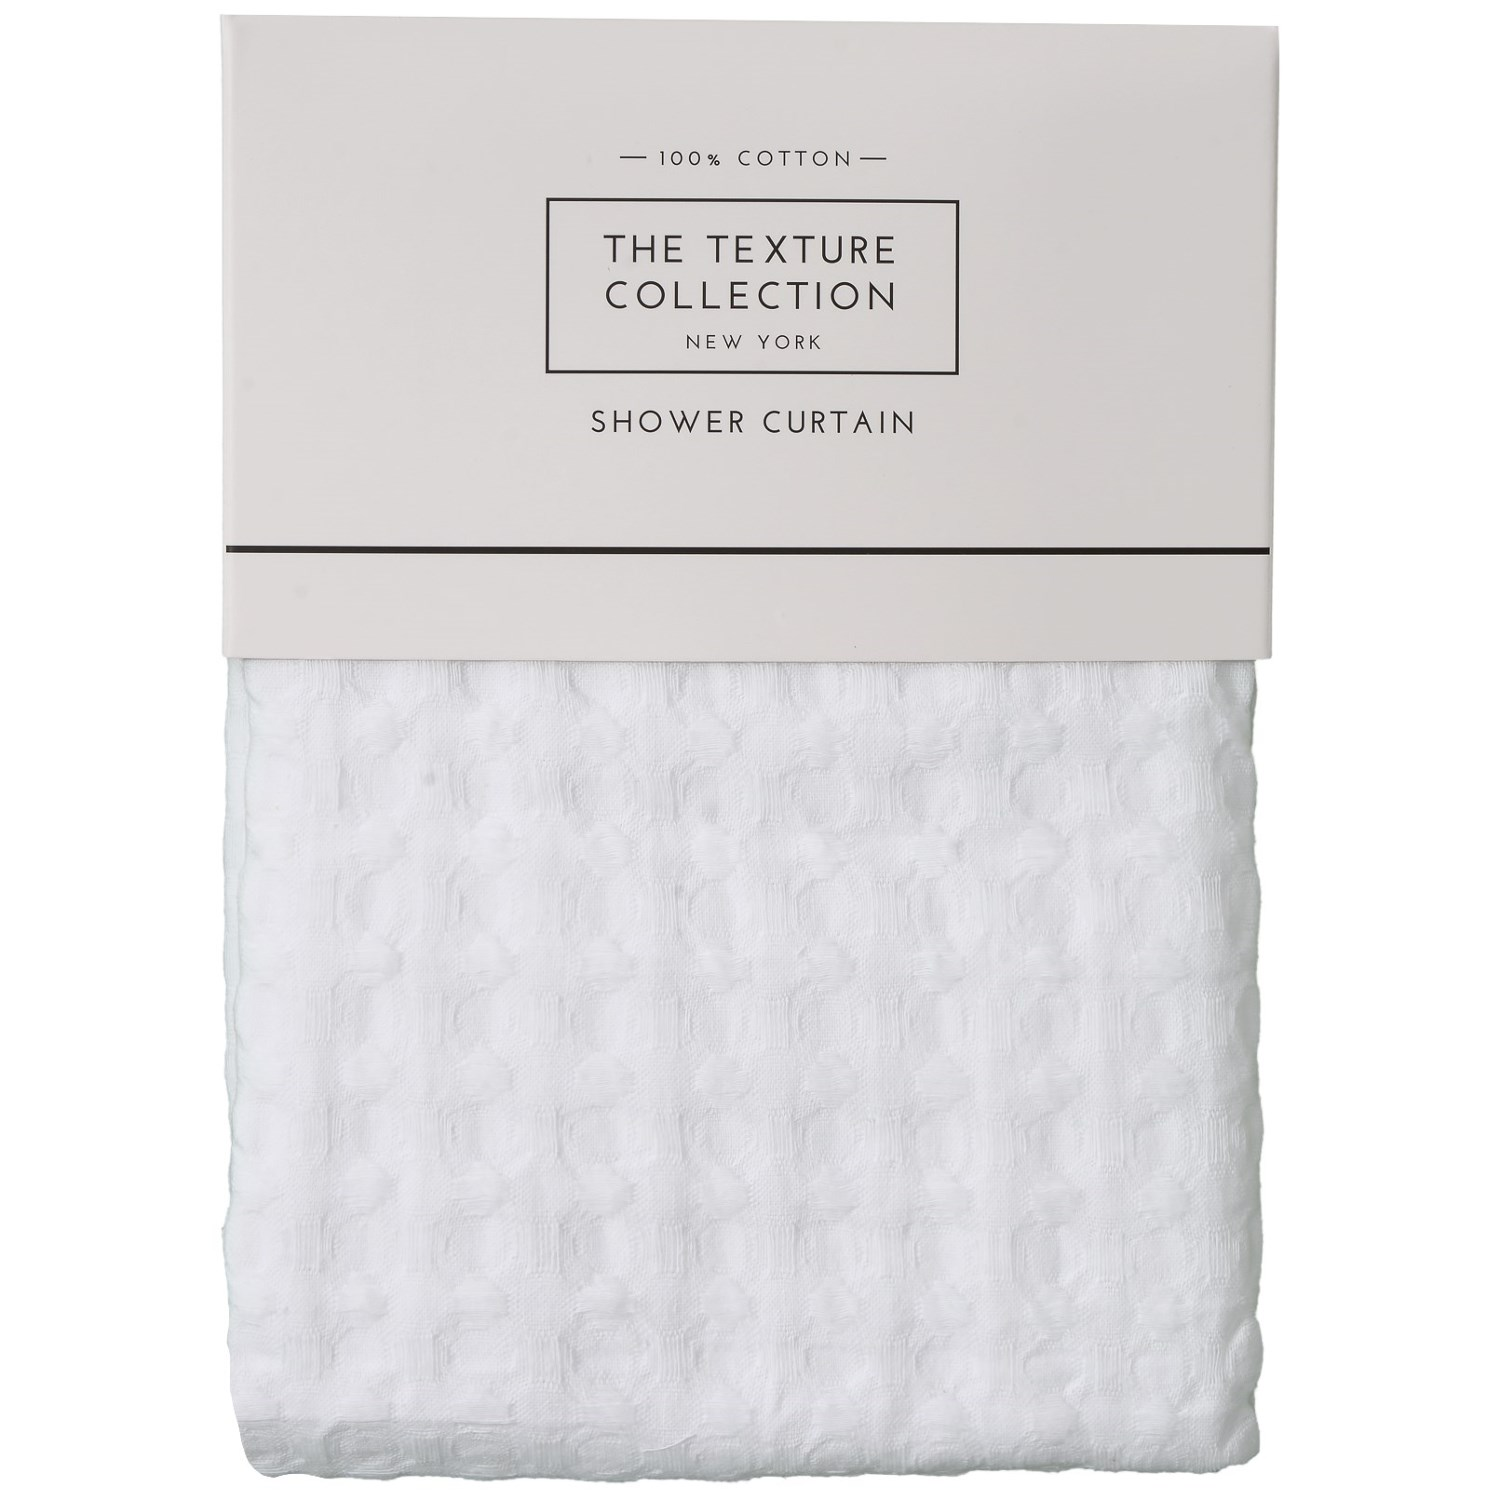 The Texture Collection Honeycomb Shower Curtain